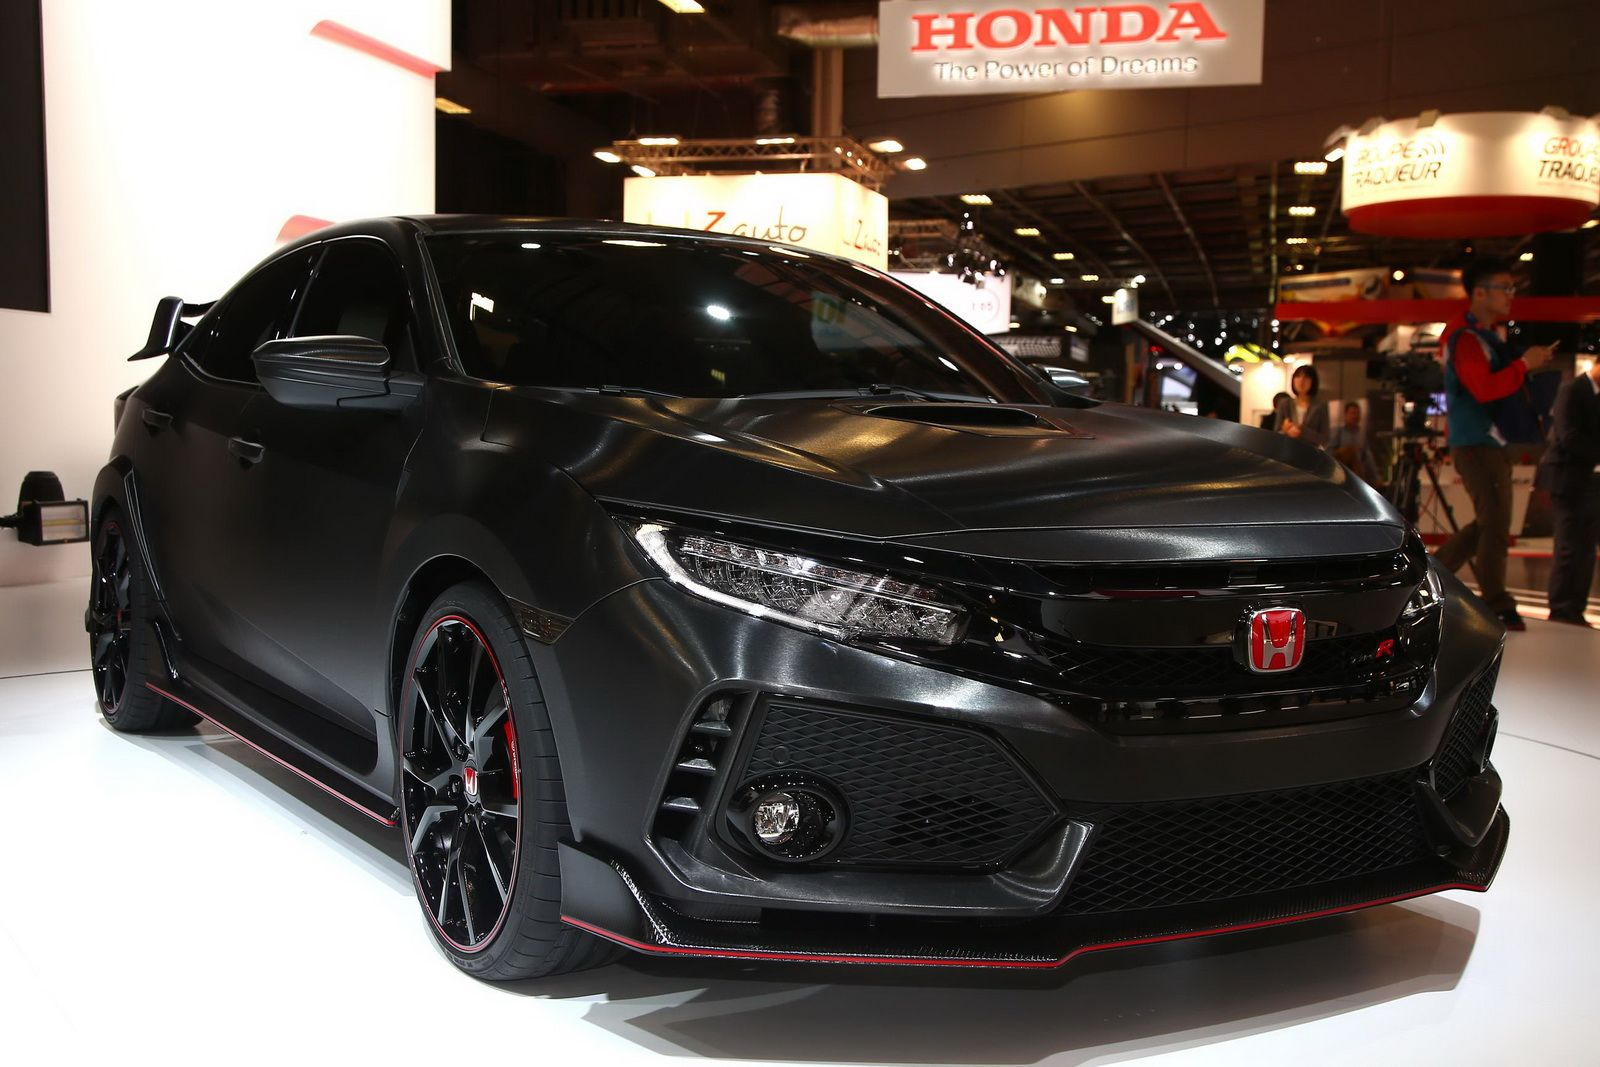 Honda-Civic-1.jpg